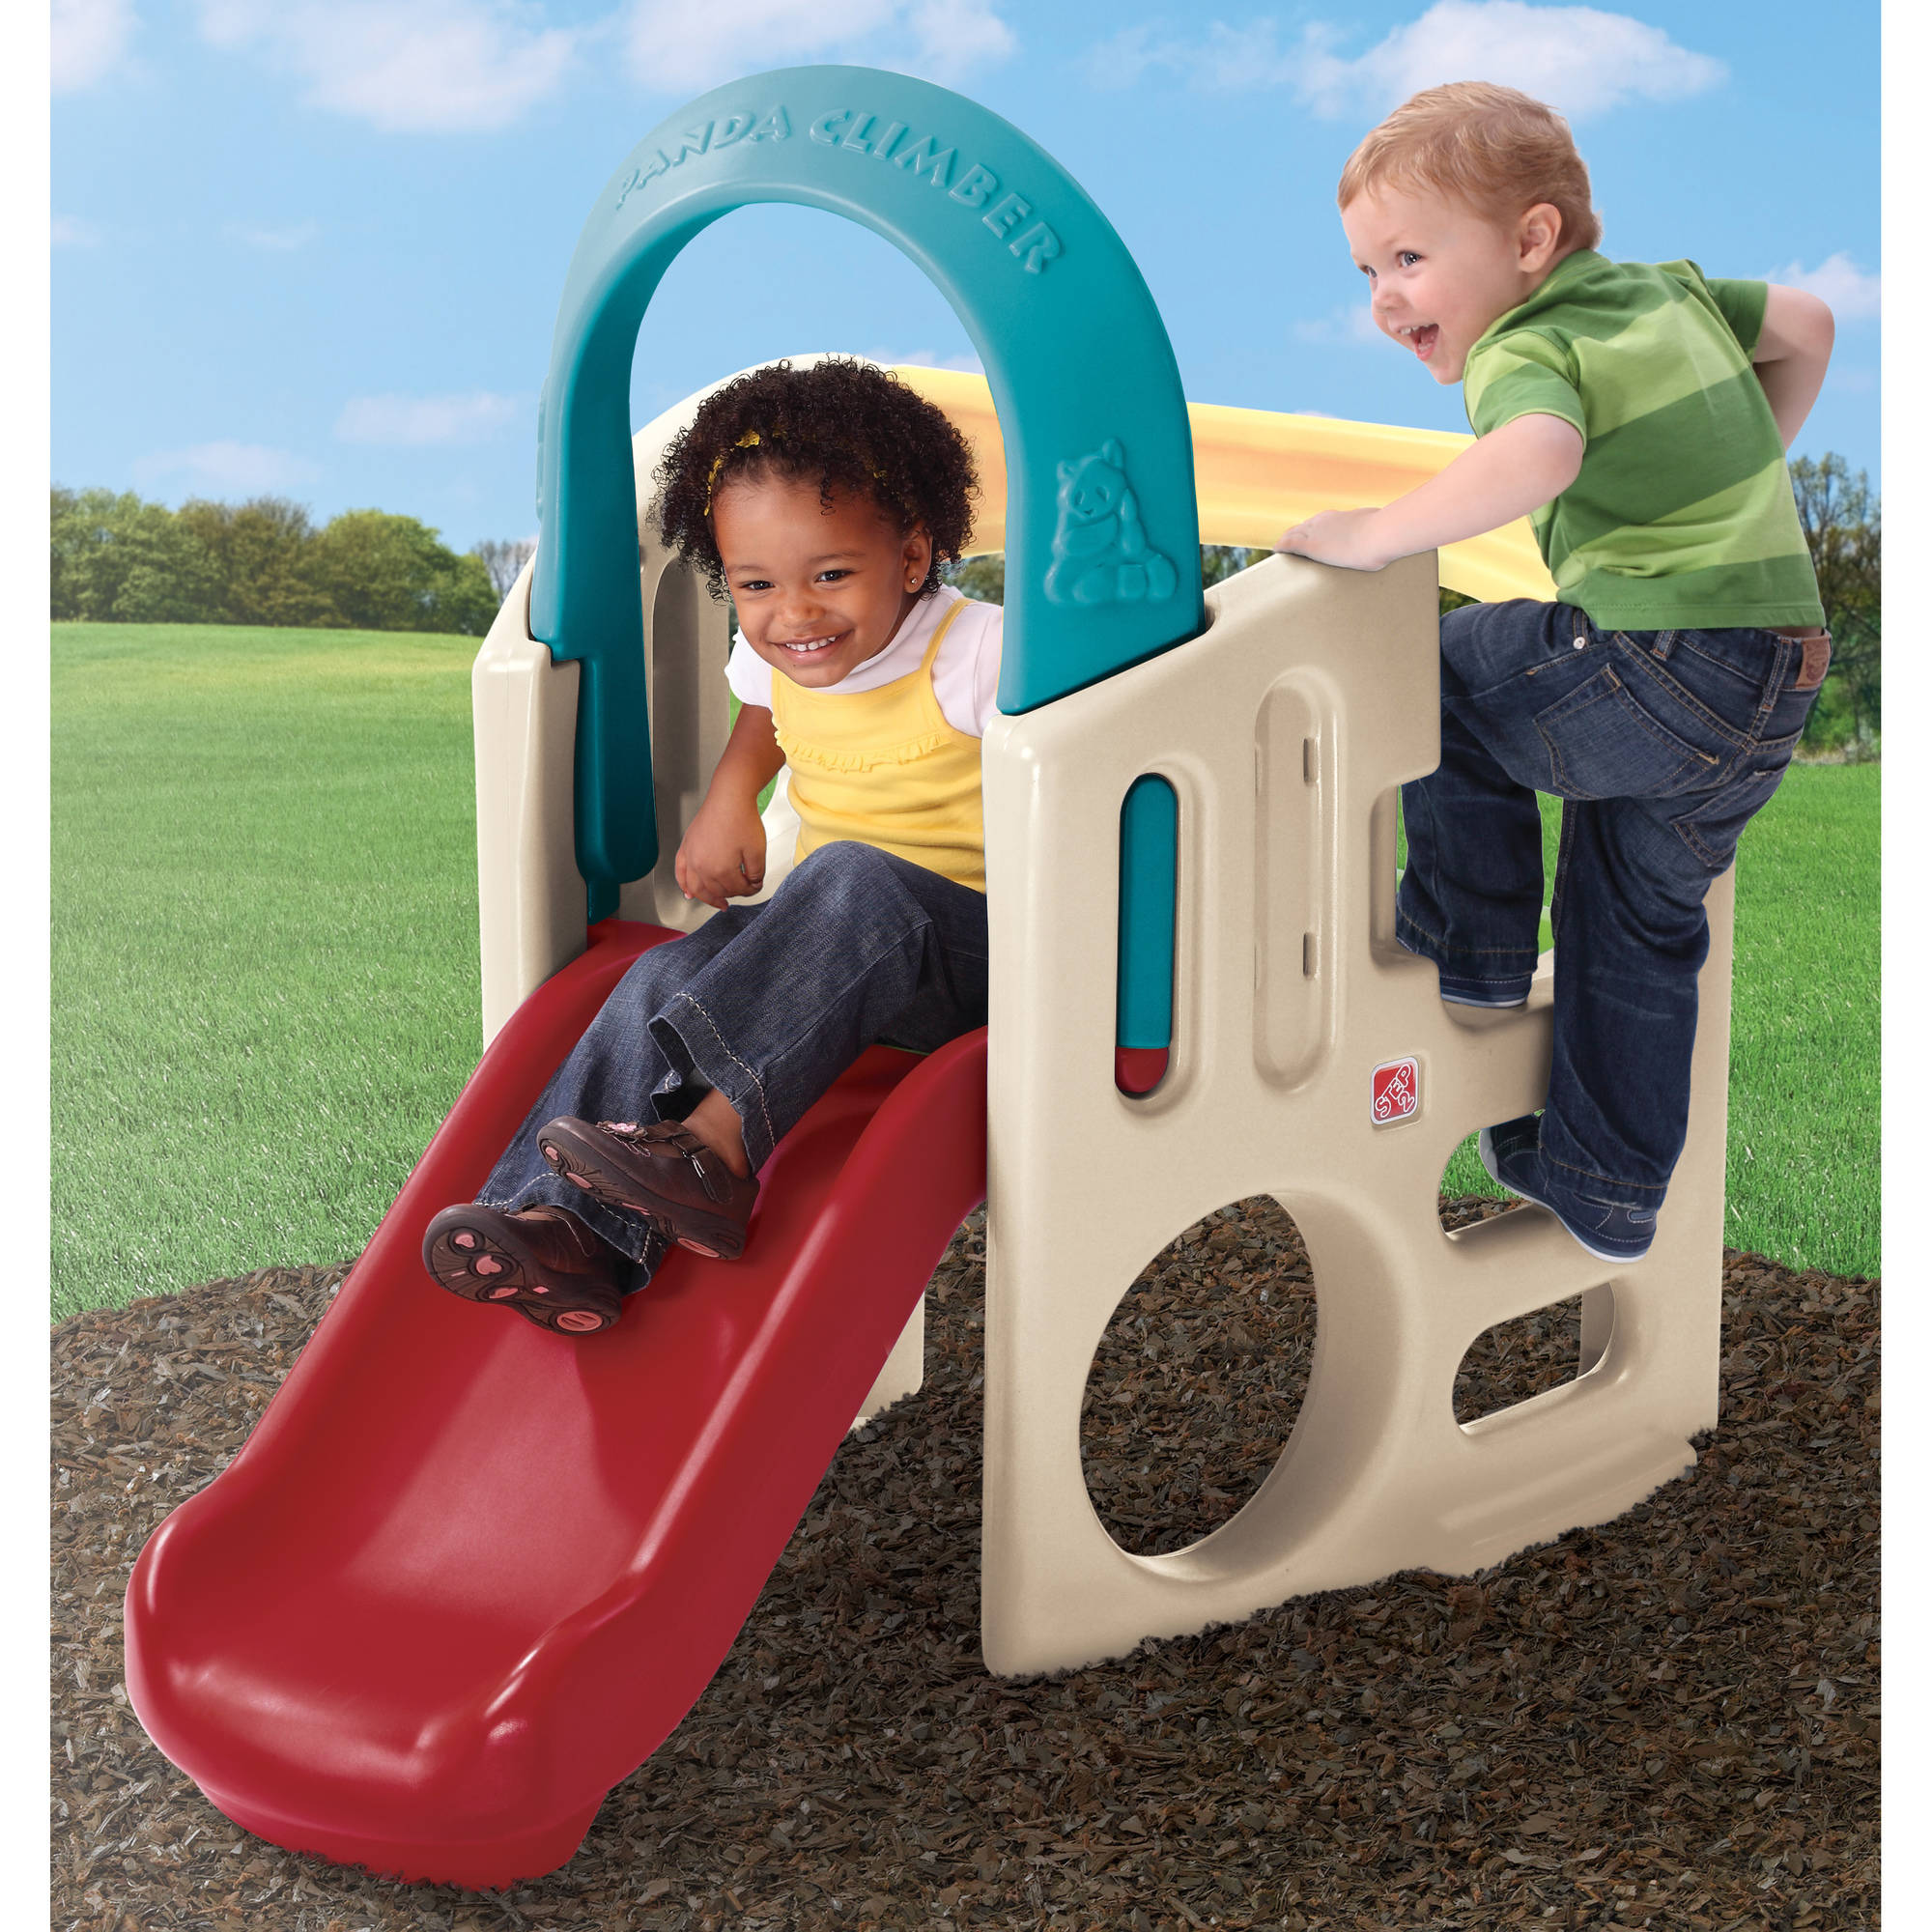 Step2 Panda Climber Activity Gym kids' Activity Gym Comes With a Fun Slide, Archway, a Tunnel and Stairway Holes